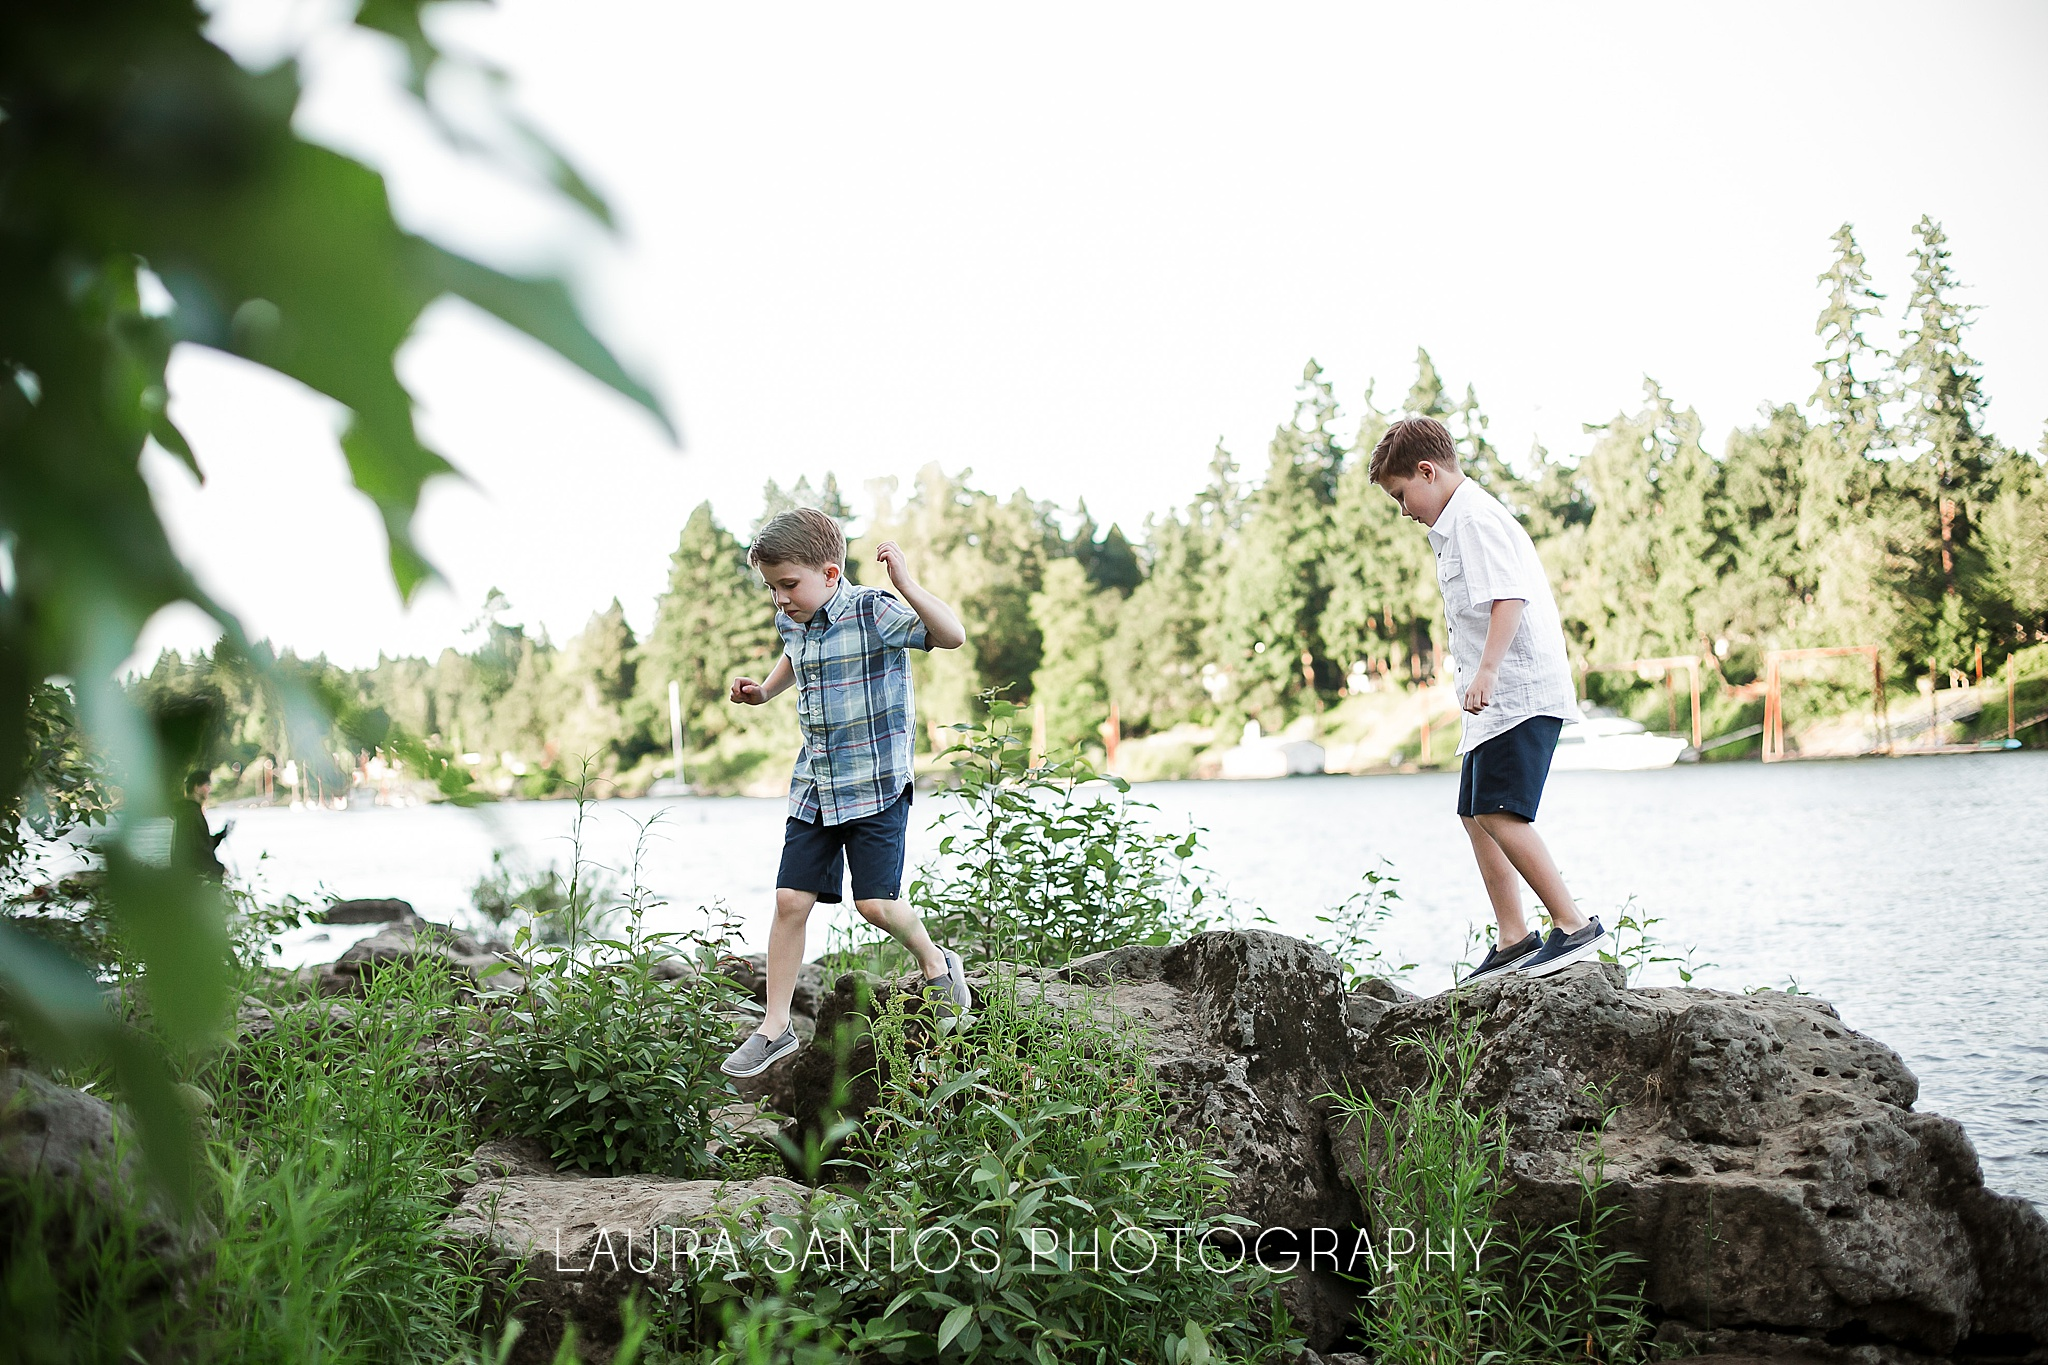 Laura Santos Photography Portland Oregon Family Photographer_1016.jpg